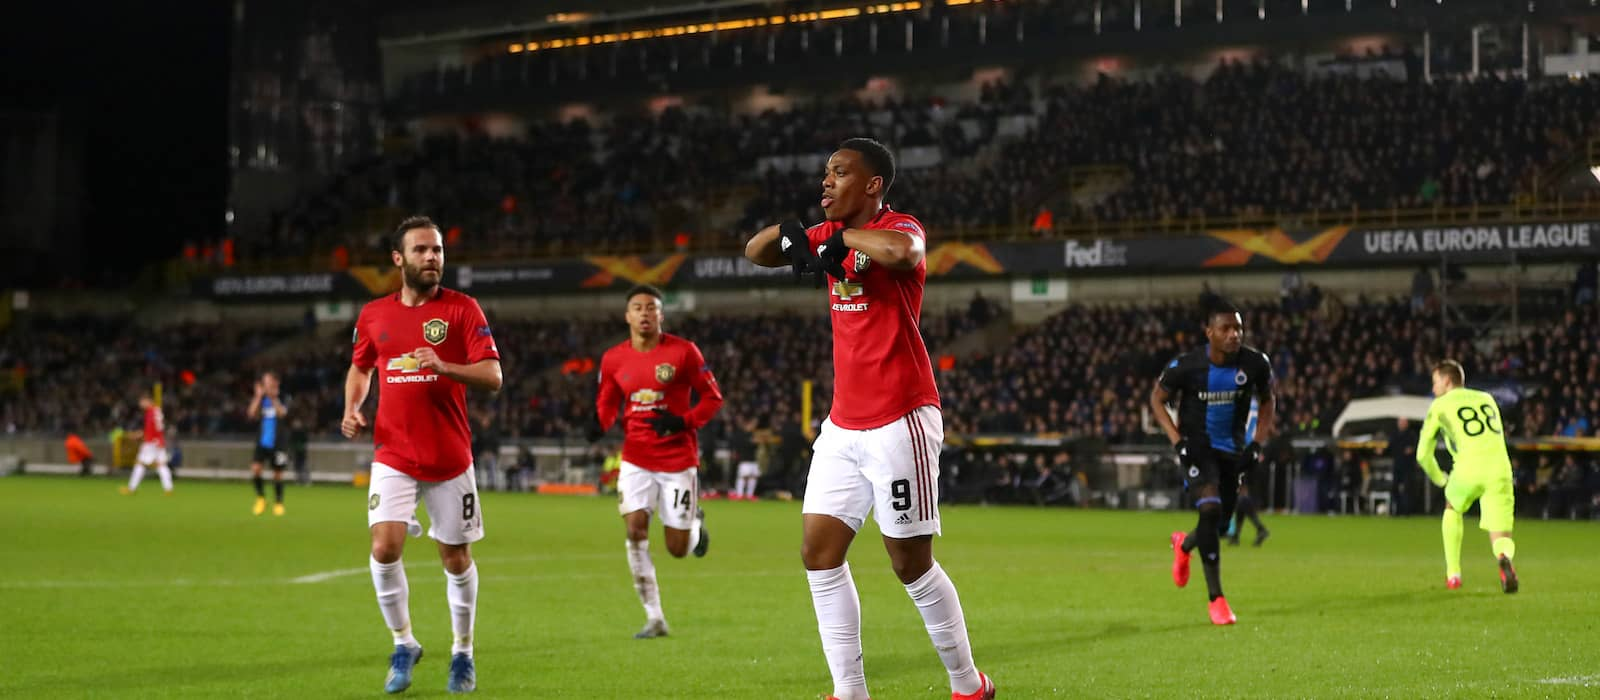 Anthony Martial sacrificed as Man United held to draw in Belgium